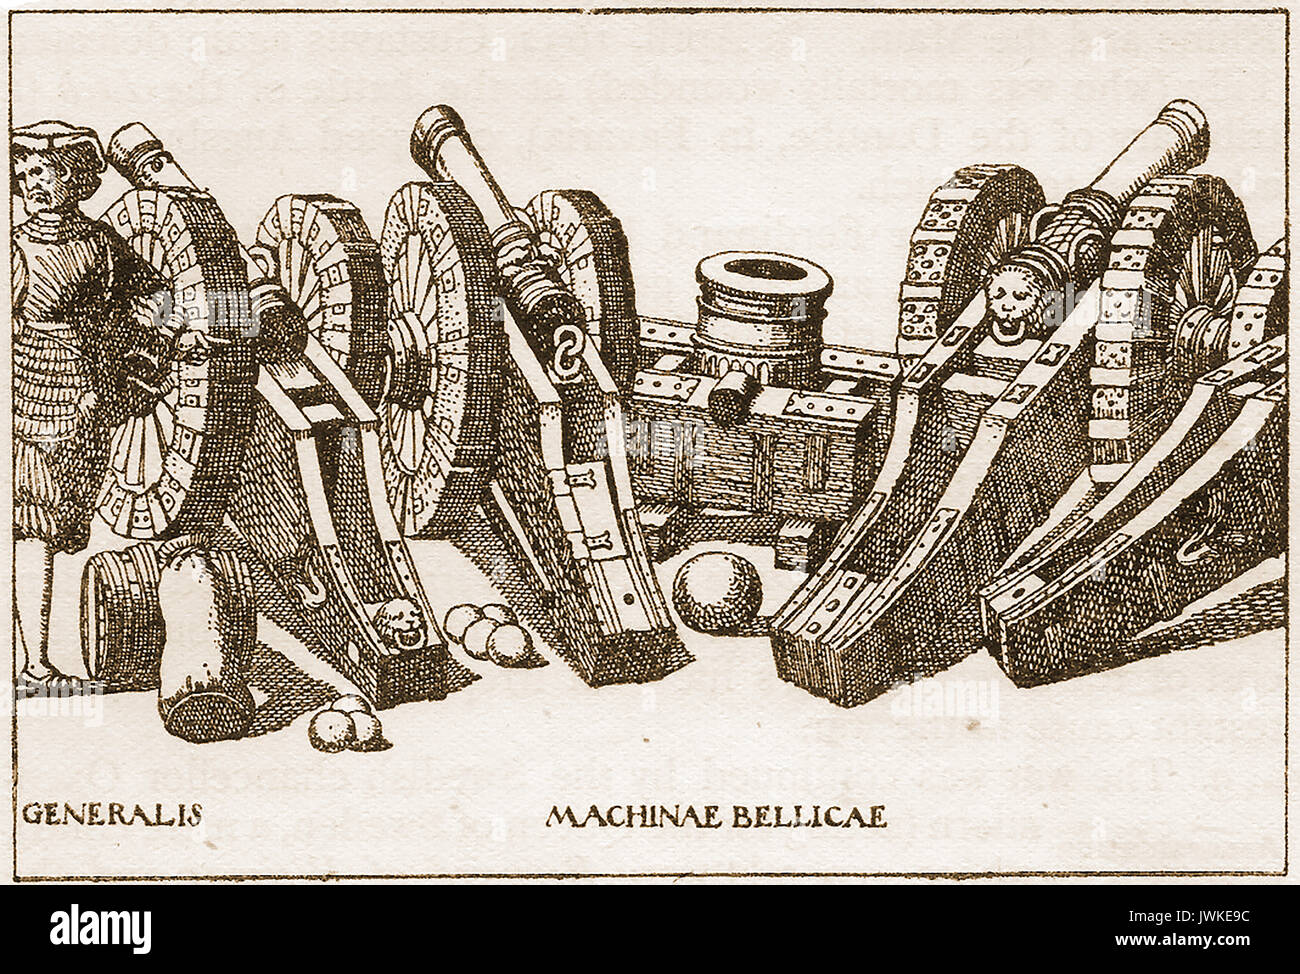 A pictorial illustration of cannons used during the 30 year War (1618-1632_ - Stock Image